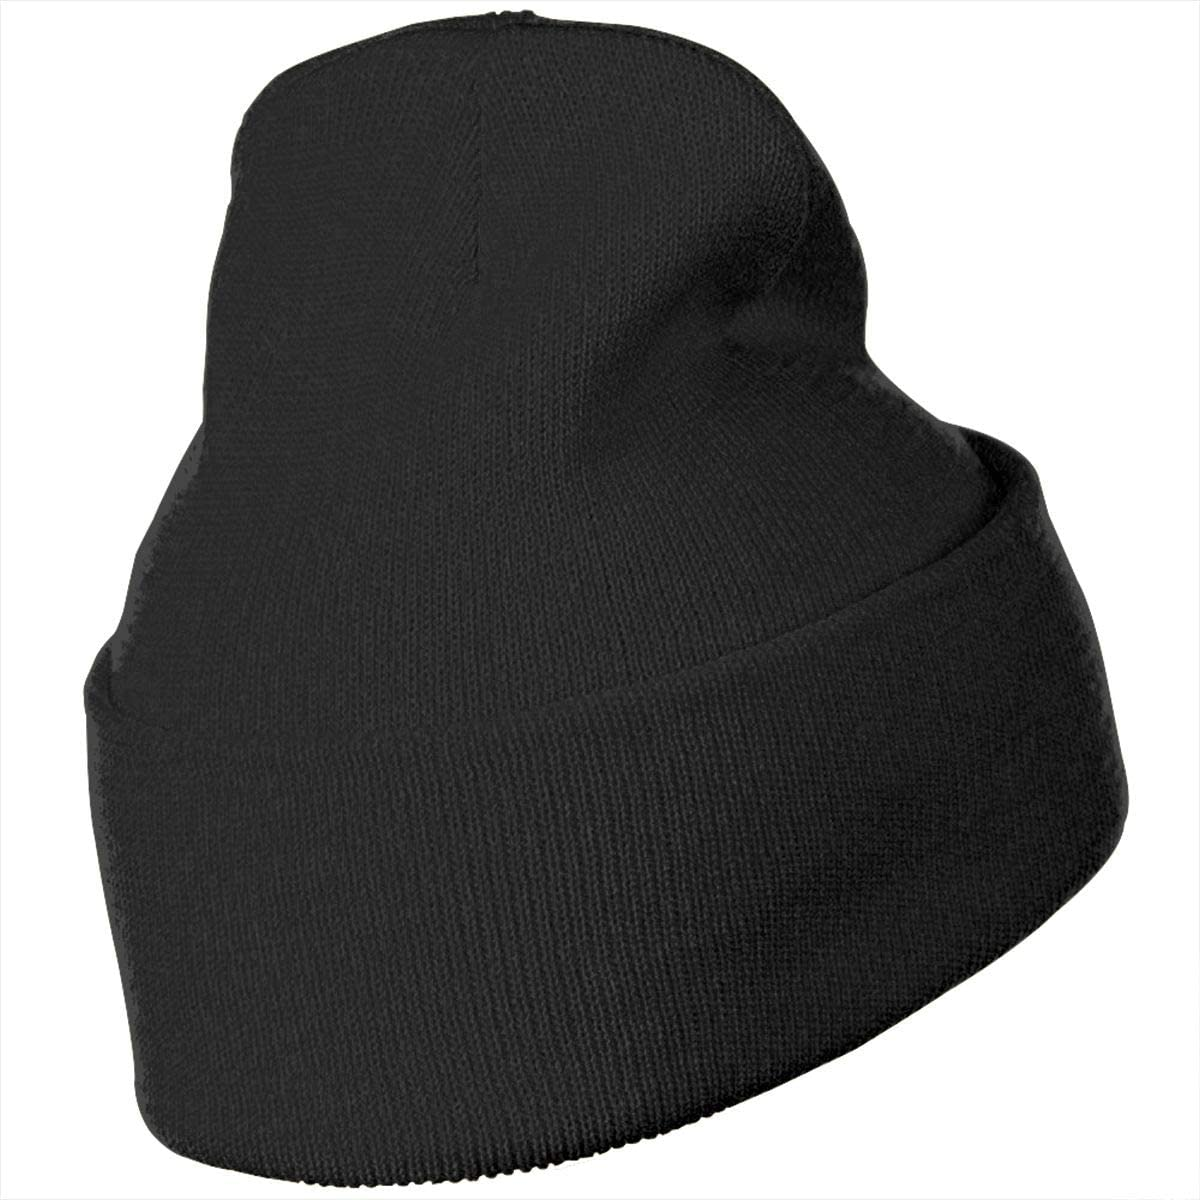 Colorful Parrots Hat for Men and Women Winter Warm Hats Knit Slouchy Thick Skull Cap Black